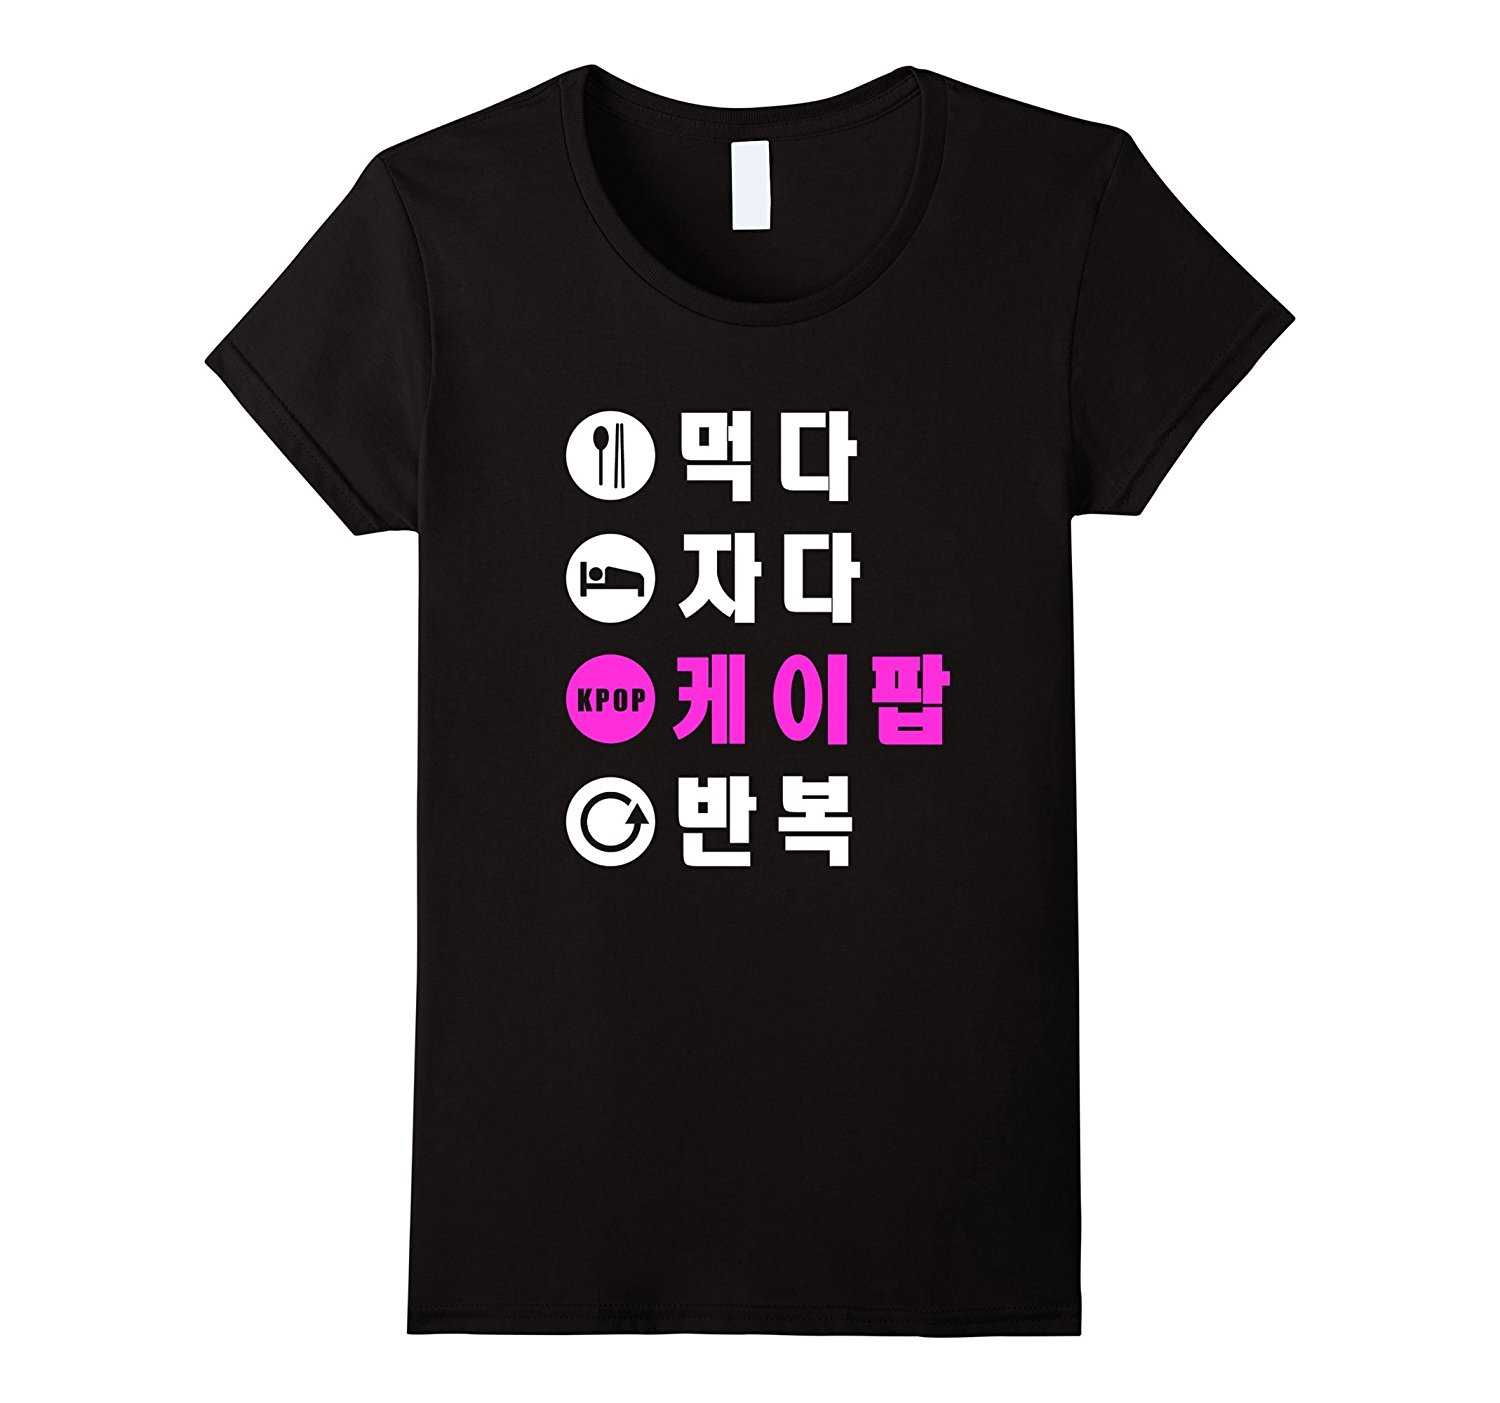 Eat Sleep K-Pop Repeat Shirt Hangul Korean T-Shirt Short Sleeve Women T Shirt Women T-Shirt 2018 Summer Cotton Top Tee